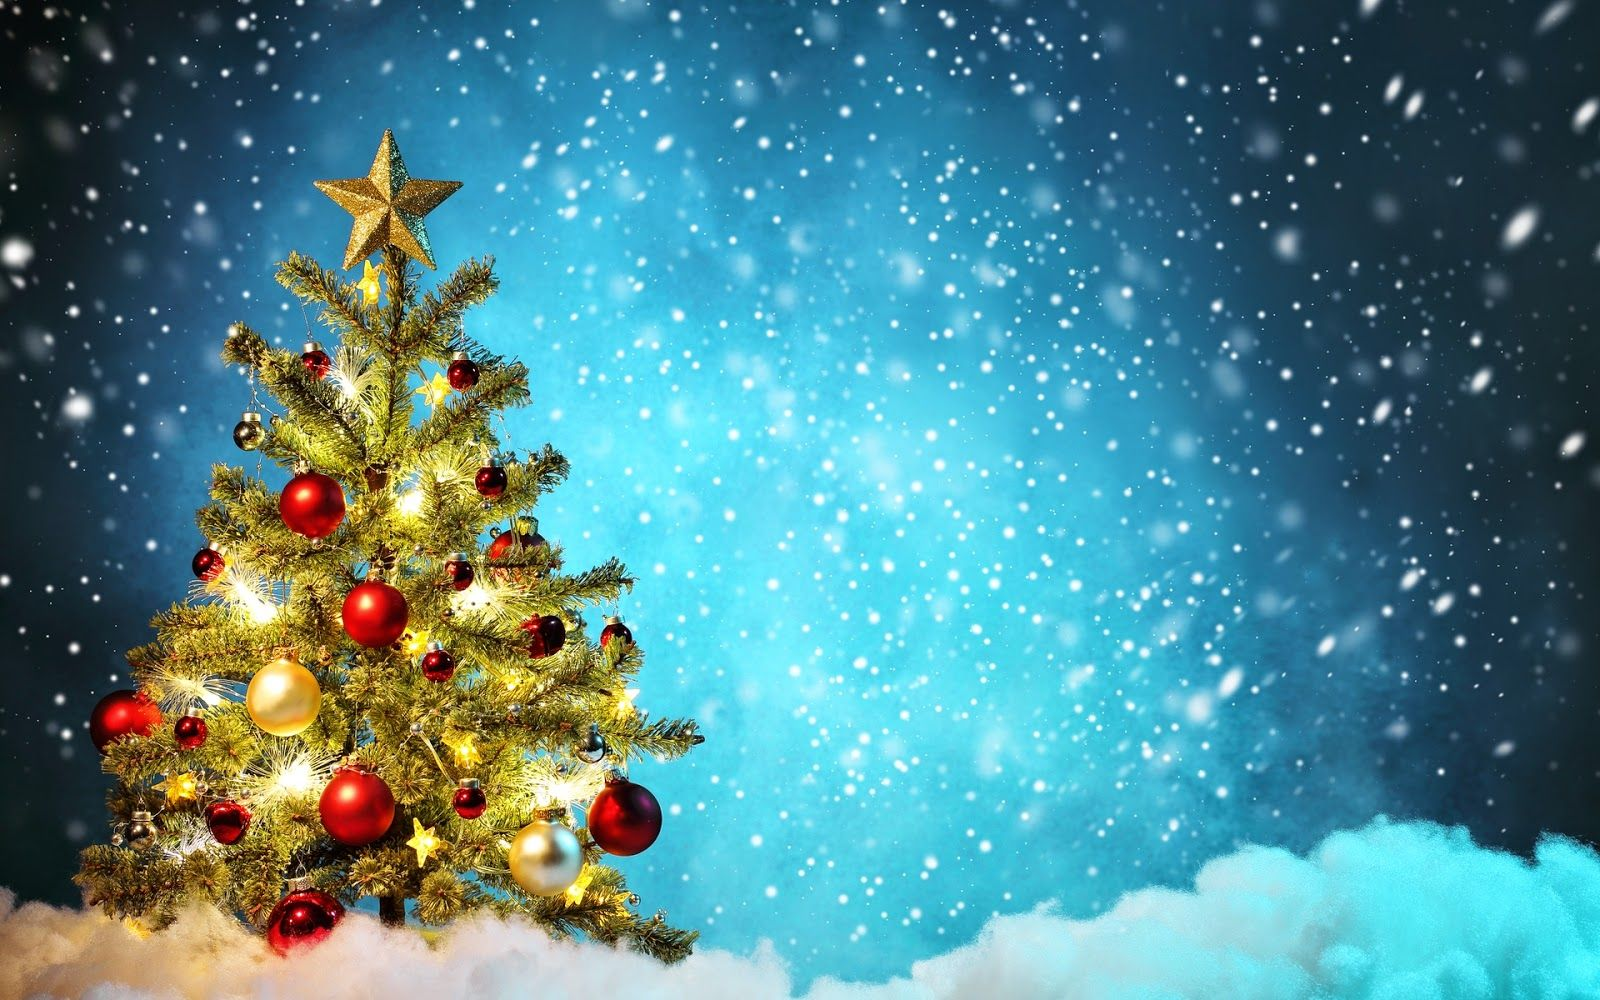 Merry Christmas Pictures Christmas Tree Wallpaper Christmas Wallpaper Free Christmas Desktop Wallpaper